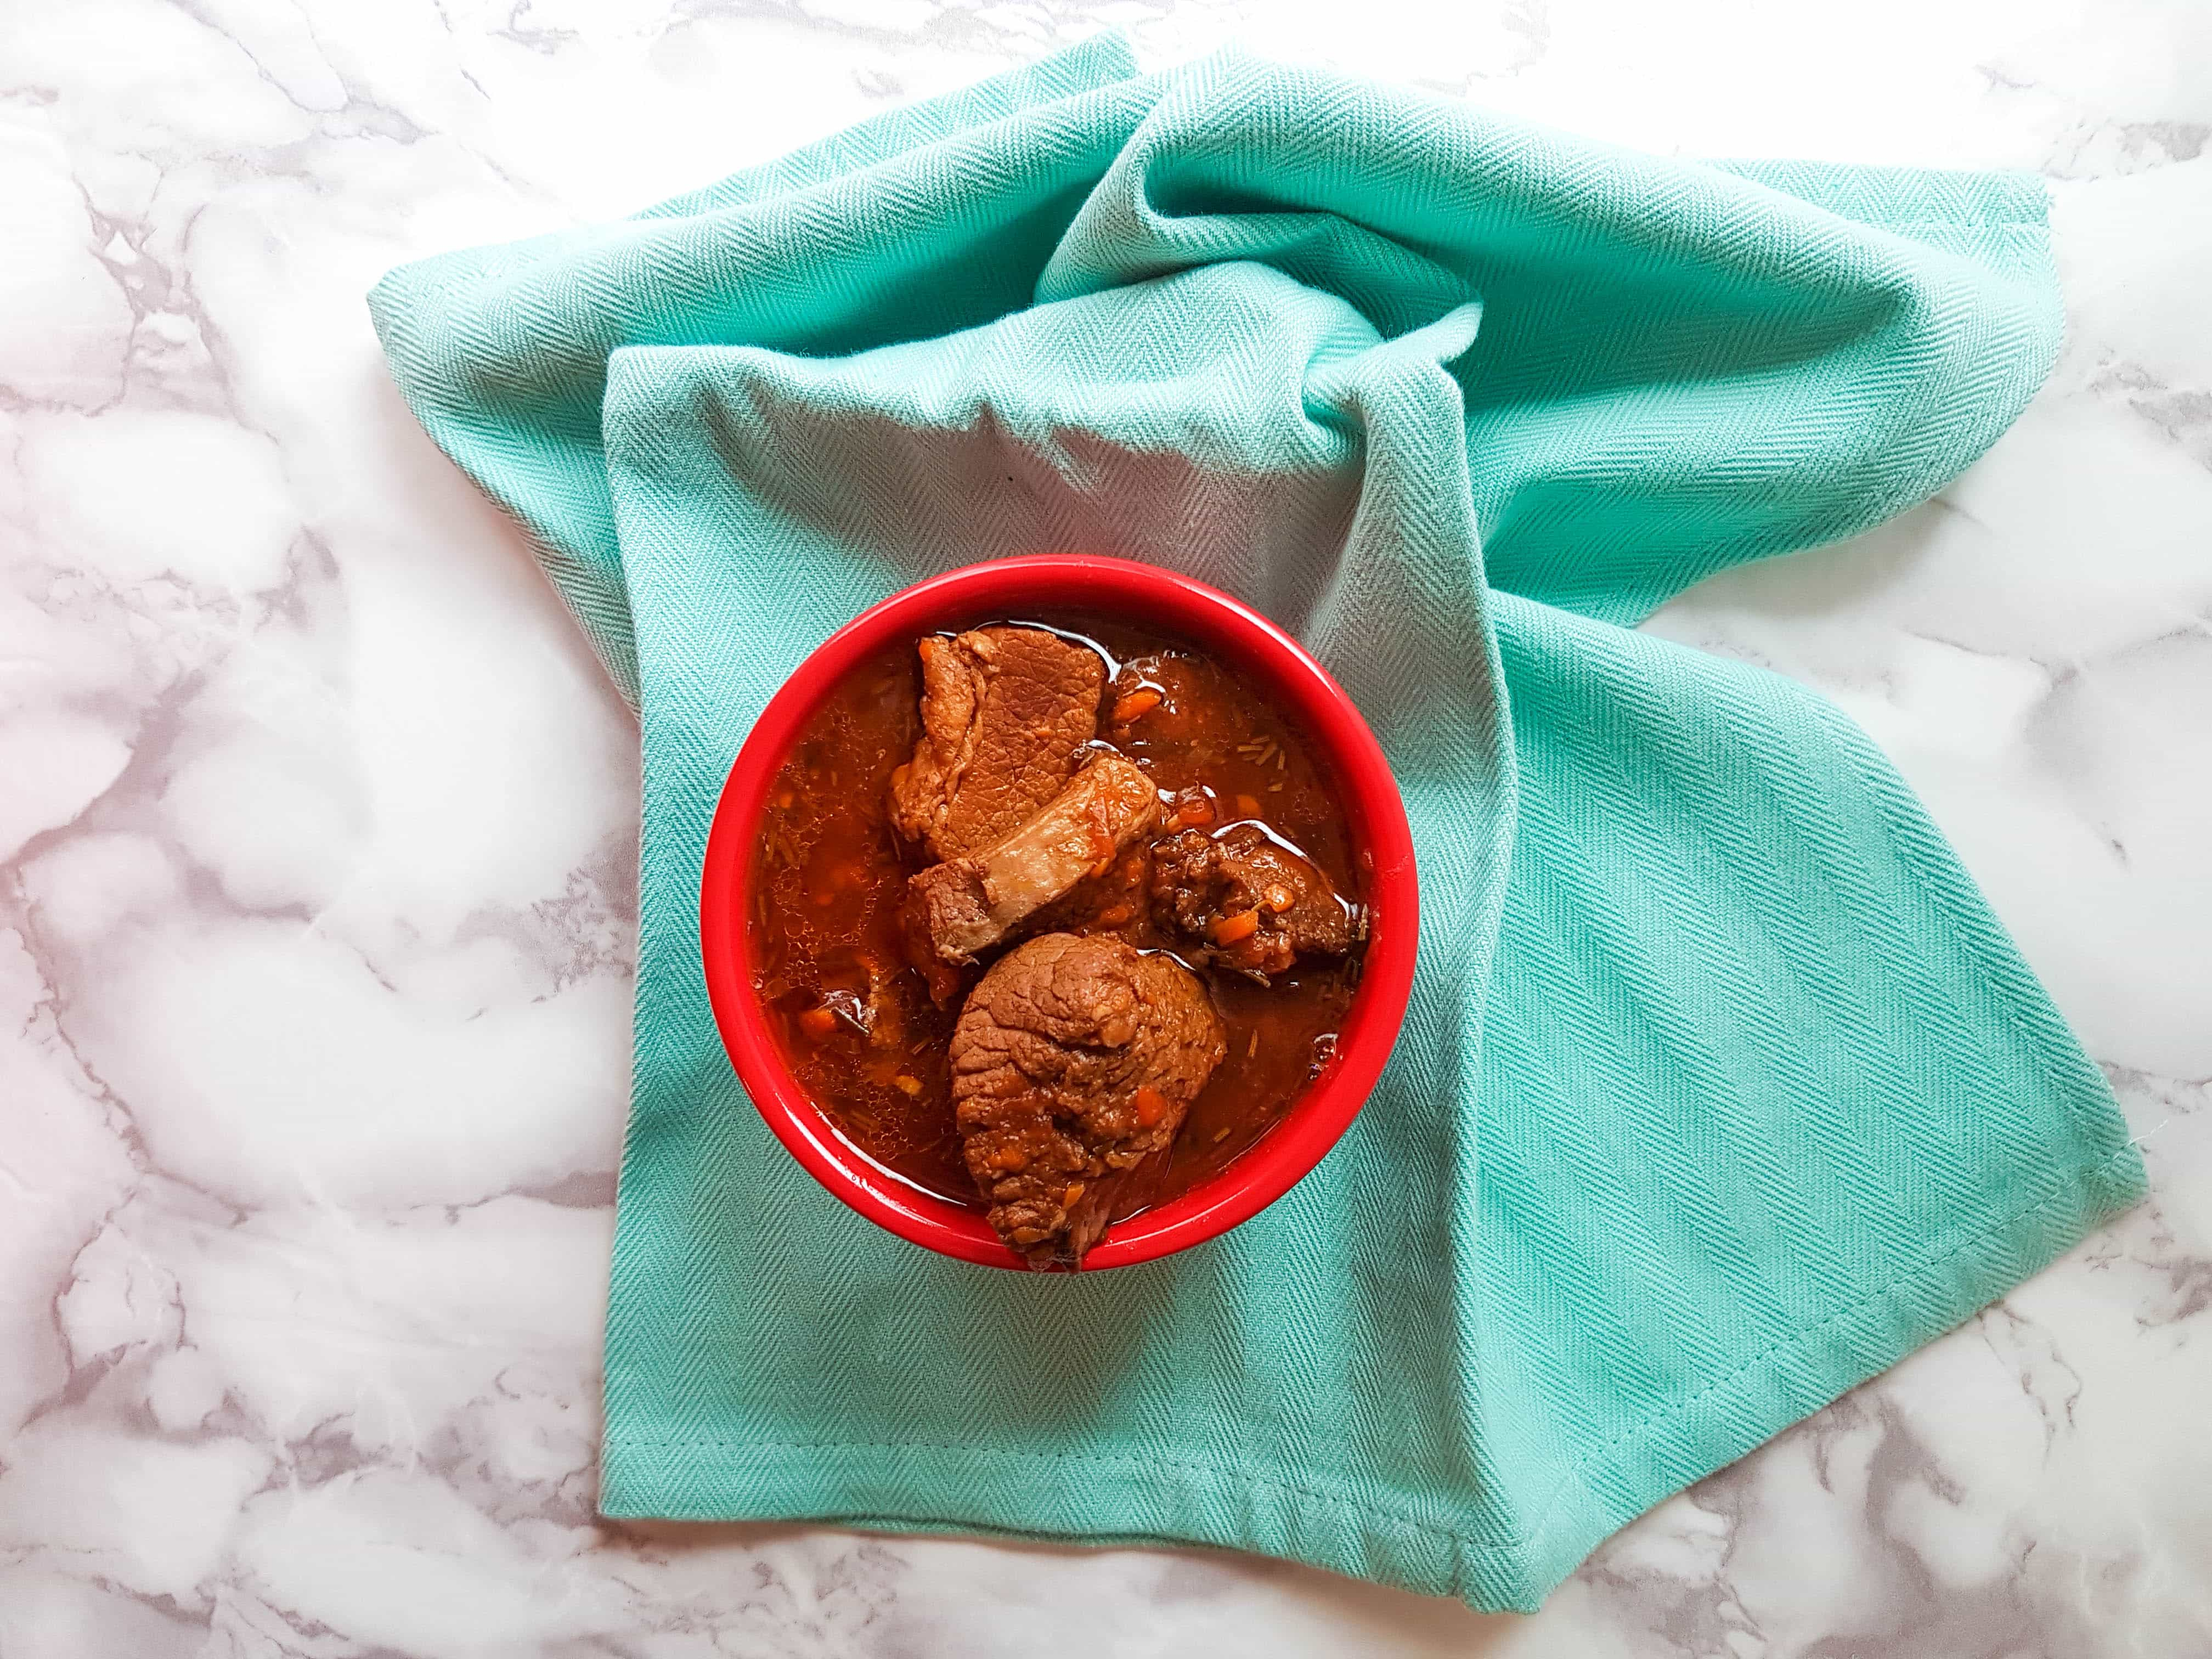 Need something hearty and uncomplicated to get over the winter blues? Try this Slow Cooker Beef Ragu www.carmyy.com